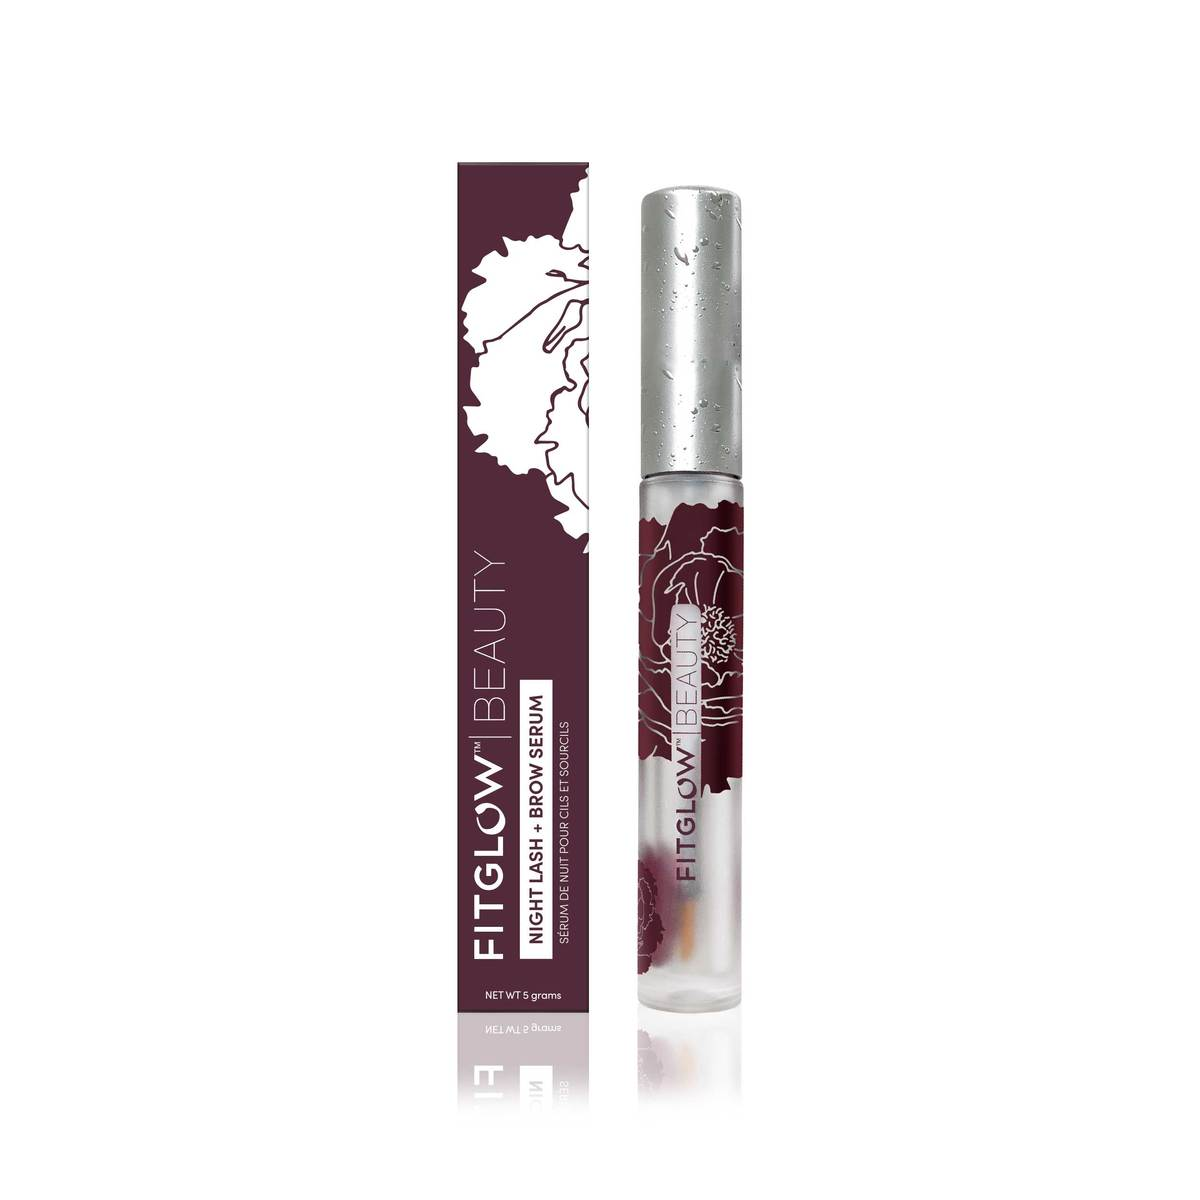 Night Lash + Brow Serum